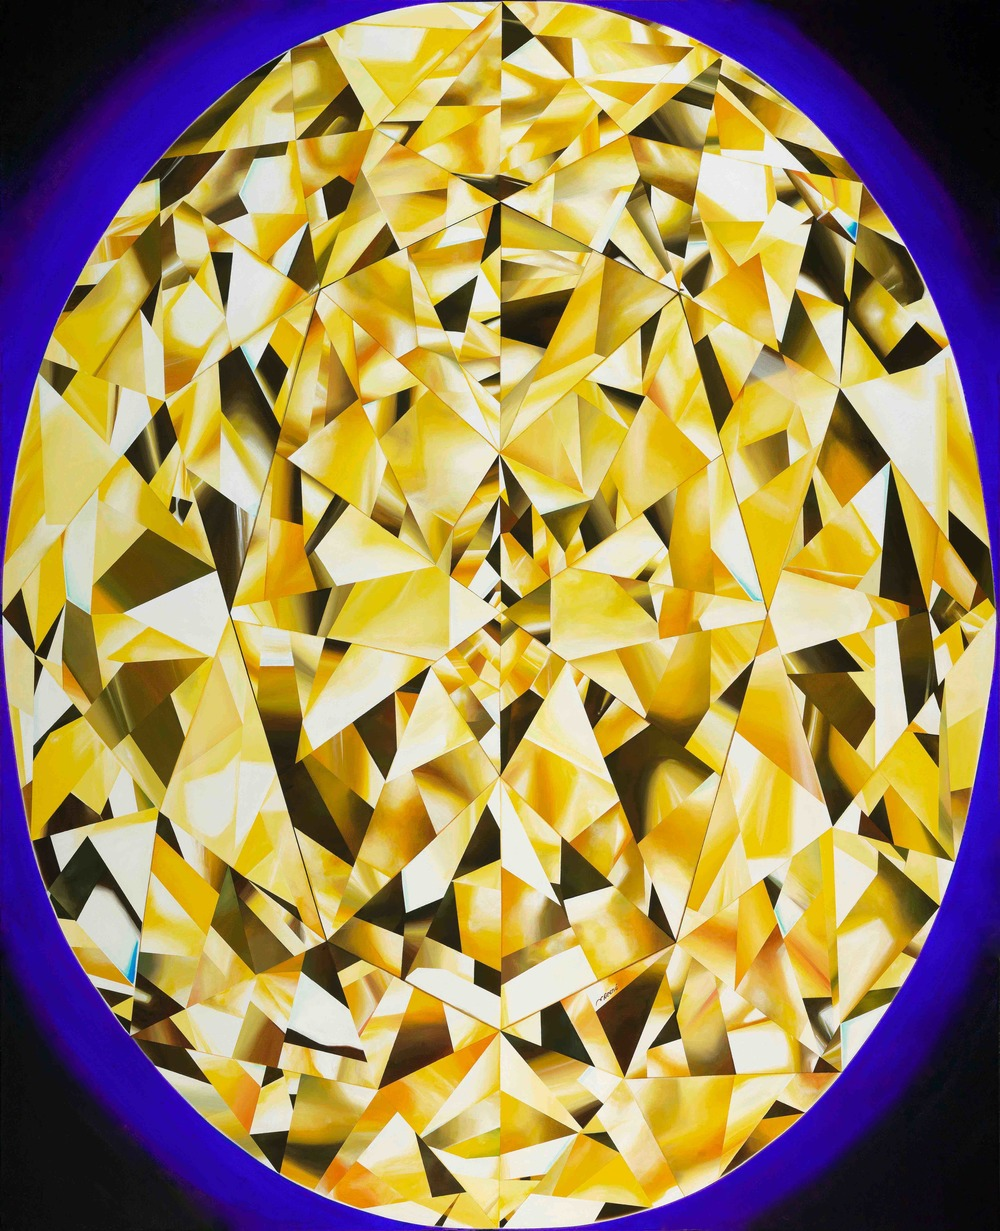 'The Portrait of Luminosity' - Oval Cut Yellow Diamond Painting by Reena Ahluwalia. 60 x 48 inches.